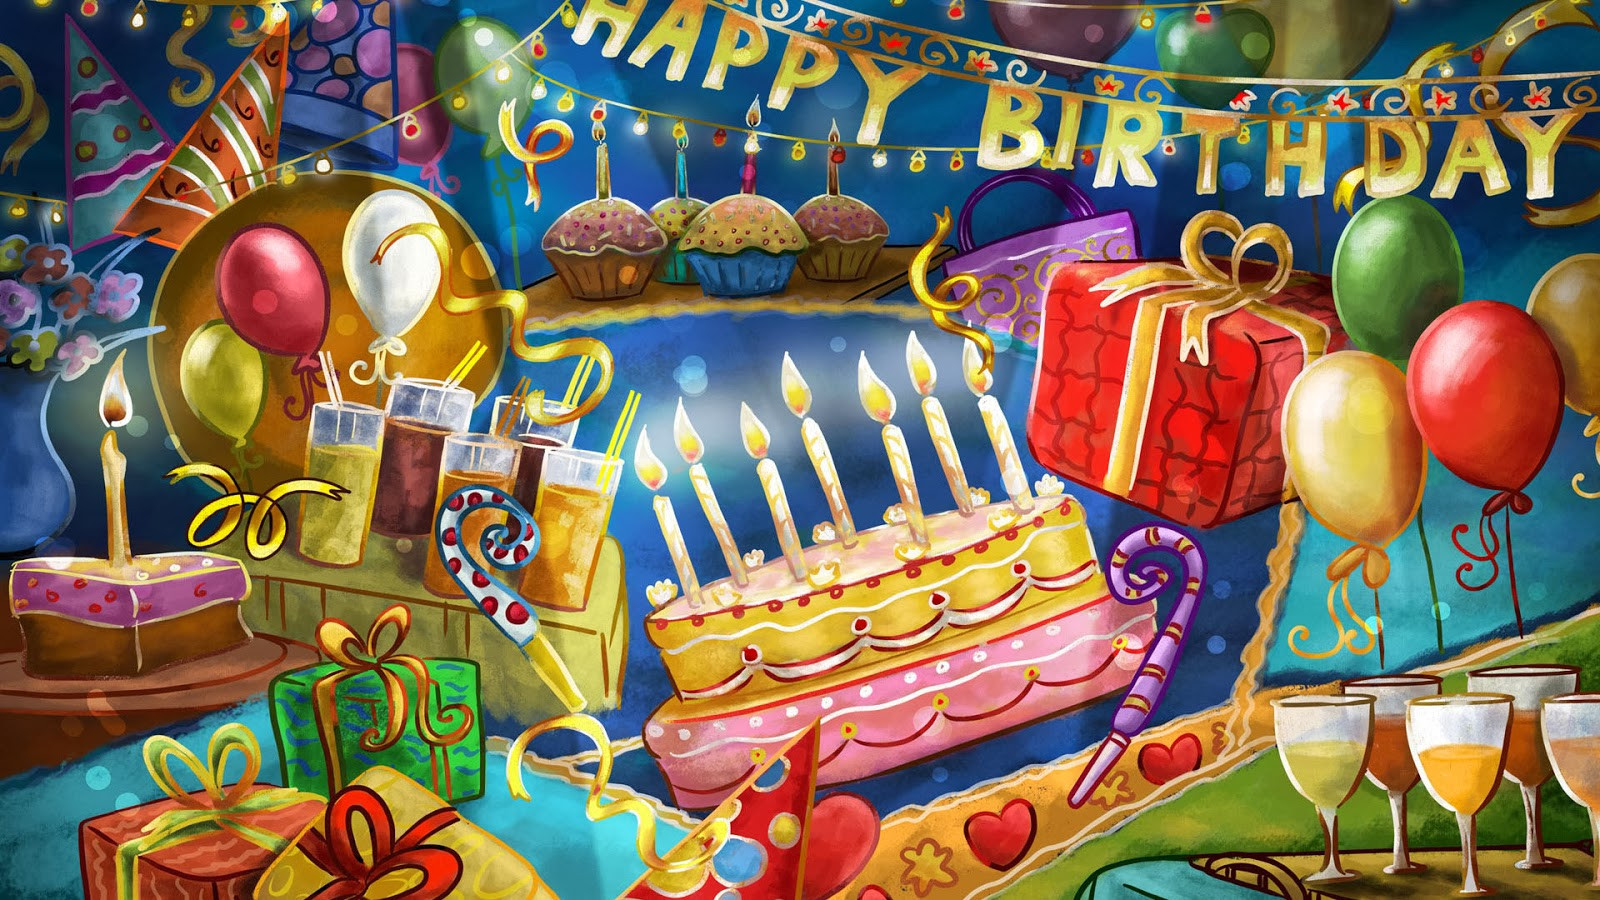 Free Download Birthday Wishes  Lovable Happy Birthday Greetings free